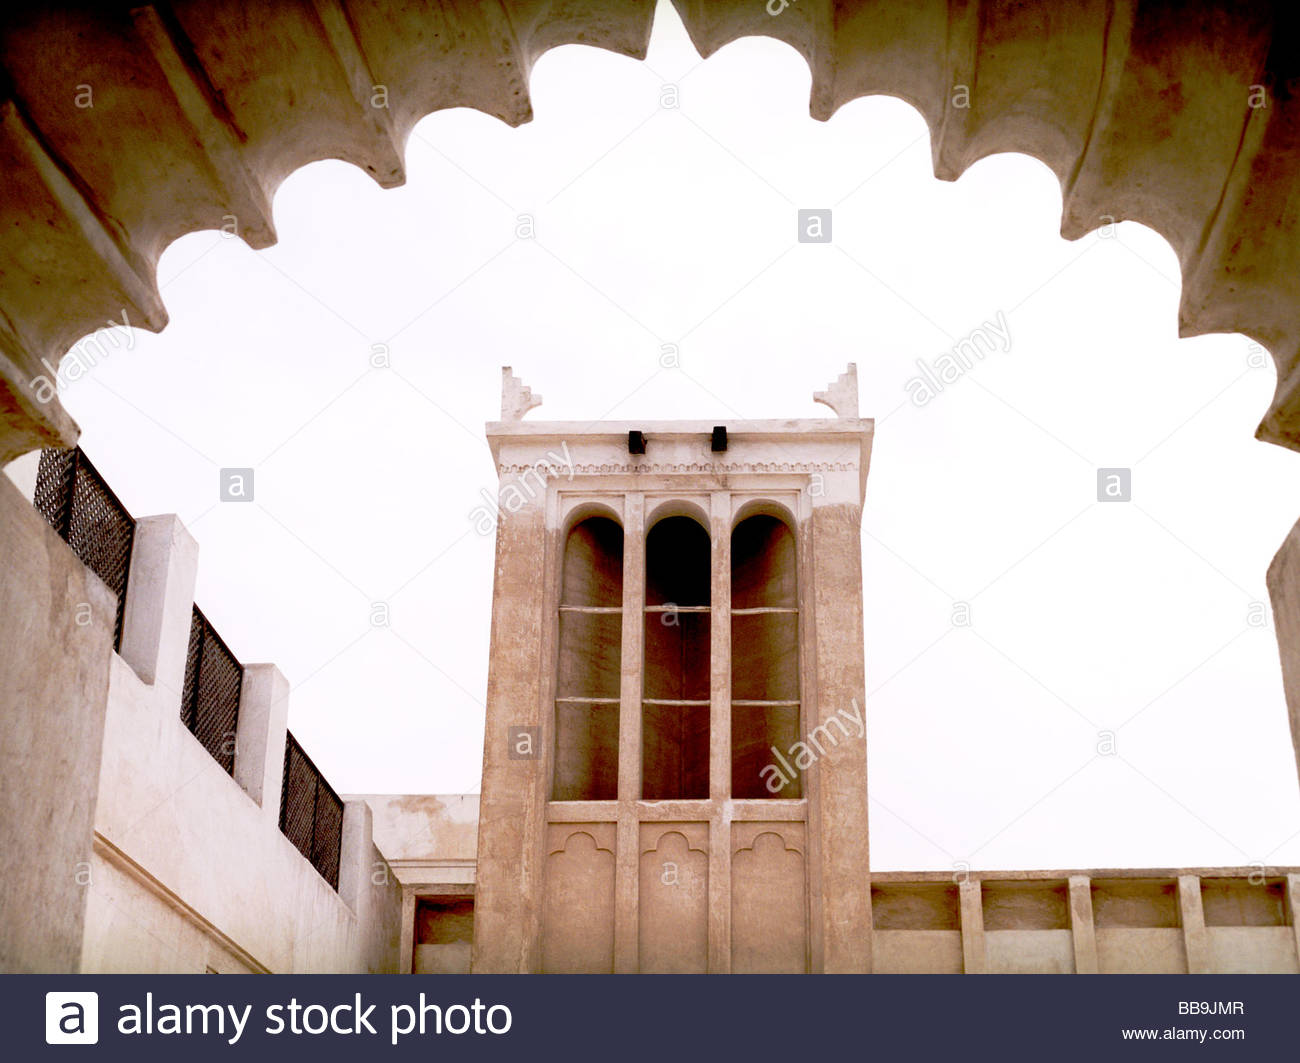 Beit Sheikh Isa Bin Ali Al Khalifa Muharraq Island, Wind Tower Bahrain House Stock Photos & Wind Tower Bahrain House ...